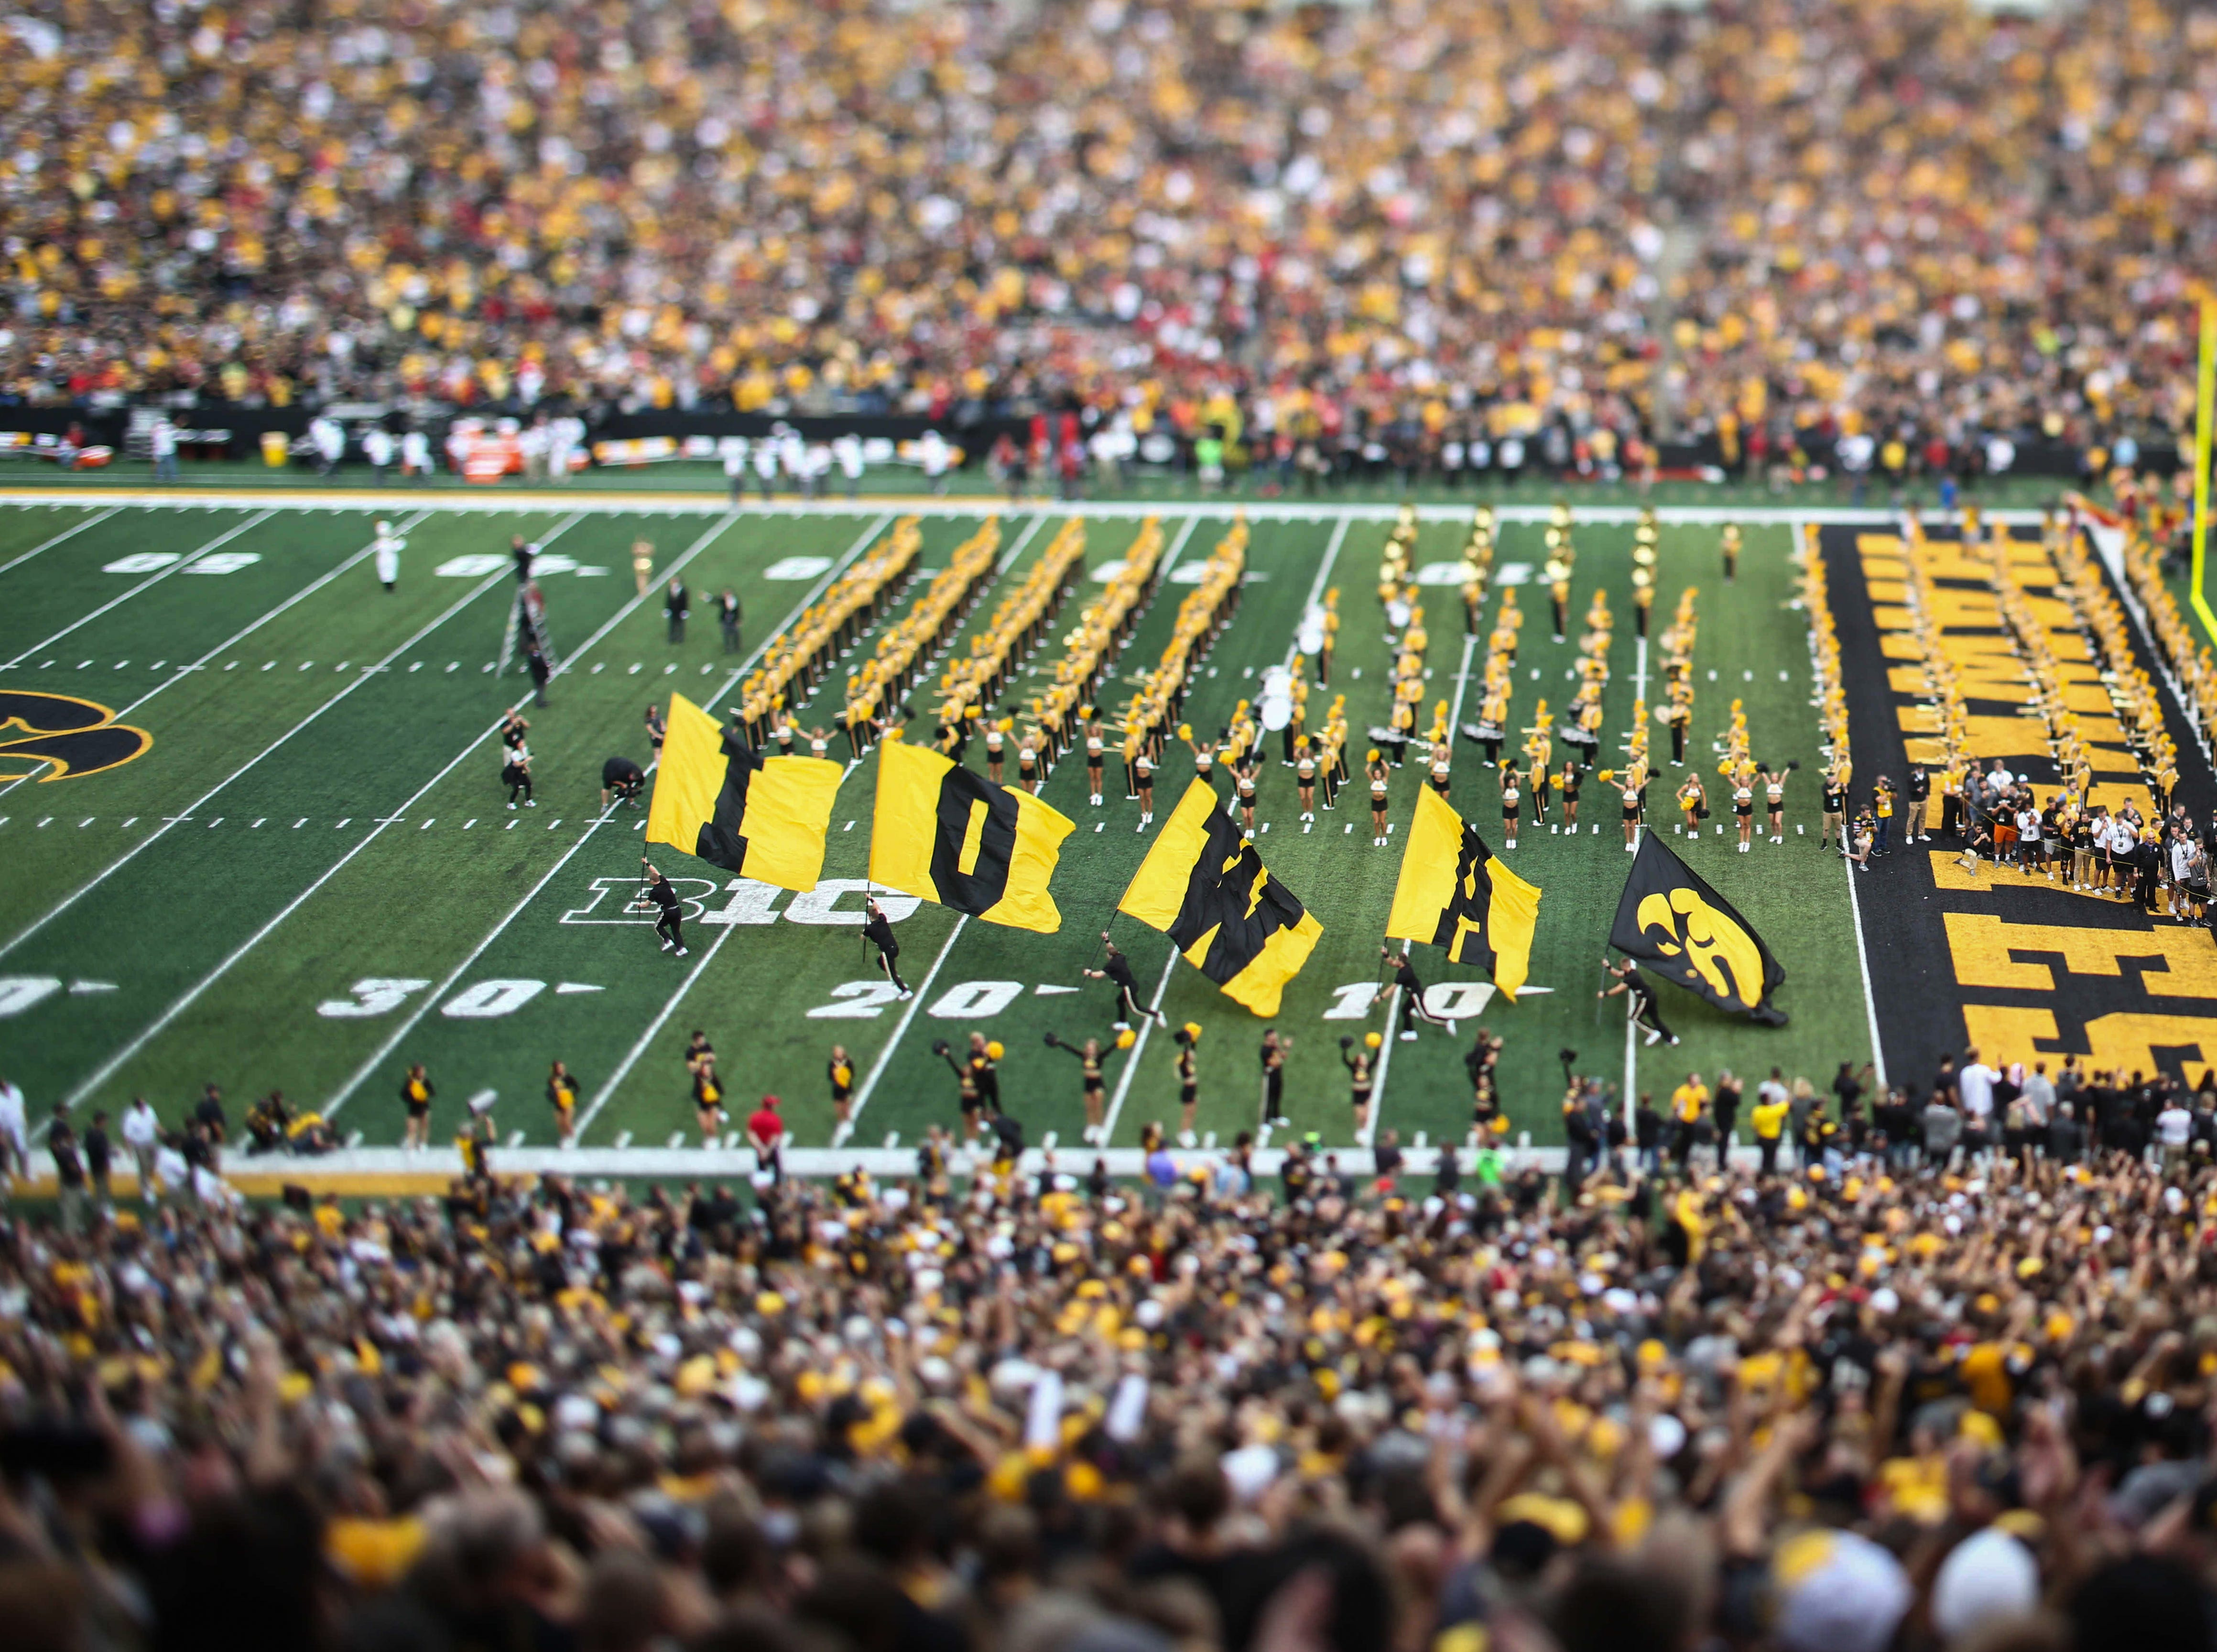 Members of the Iowa Spirit Squad run the Iowa flags onto the field prior to kickoff against Iowa State on Saturday, Sept. 8, 2018, at Kinnick Stadium in Iowa City.